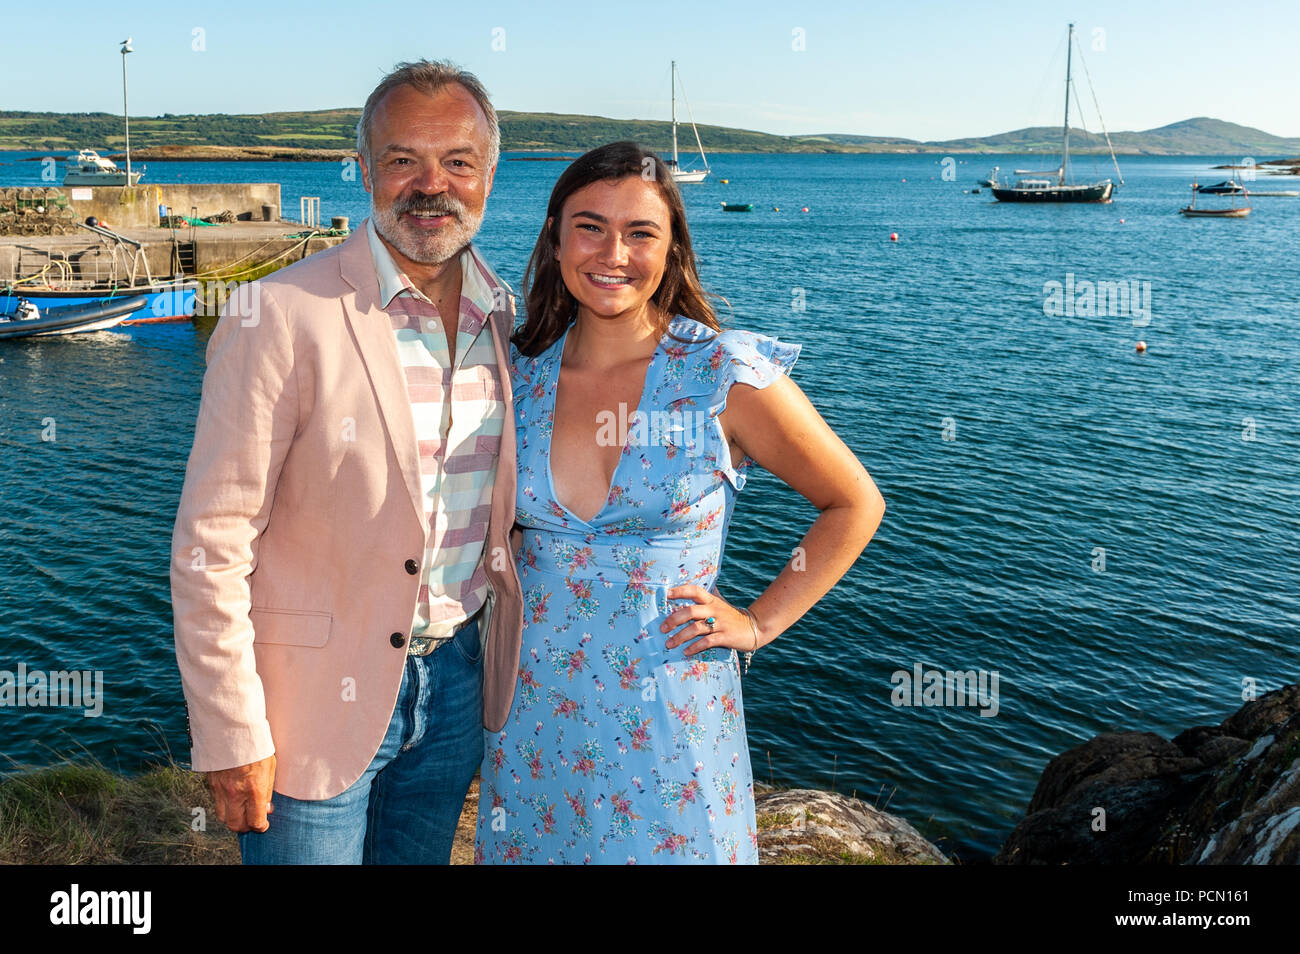 Ahakista, West Cork, Ireland. 3rd Aug, 2018.  As part of the Ahakista August Festival, Graham Norton hosts the Annual Graham Norton Table Quiz.  Special guest, Jennifer Barry (from the Young Offenders), also attended the festival.  The proceeds of the quiz are going to the Ahakista Community Association.  Credit: Andy Gibson/Alamy Live News. Stock Photo